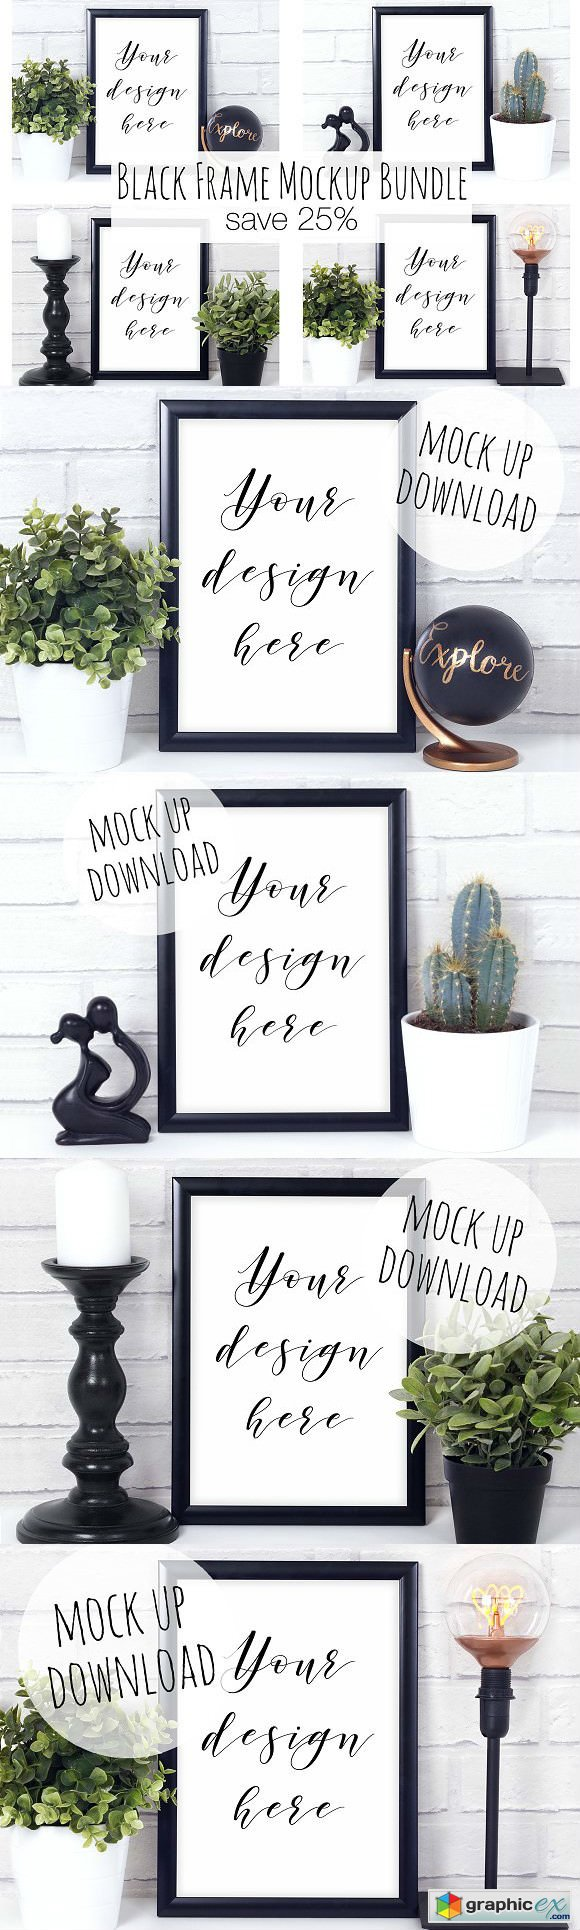 Black Frame Mock Up Bundle